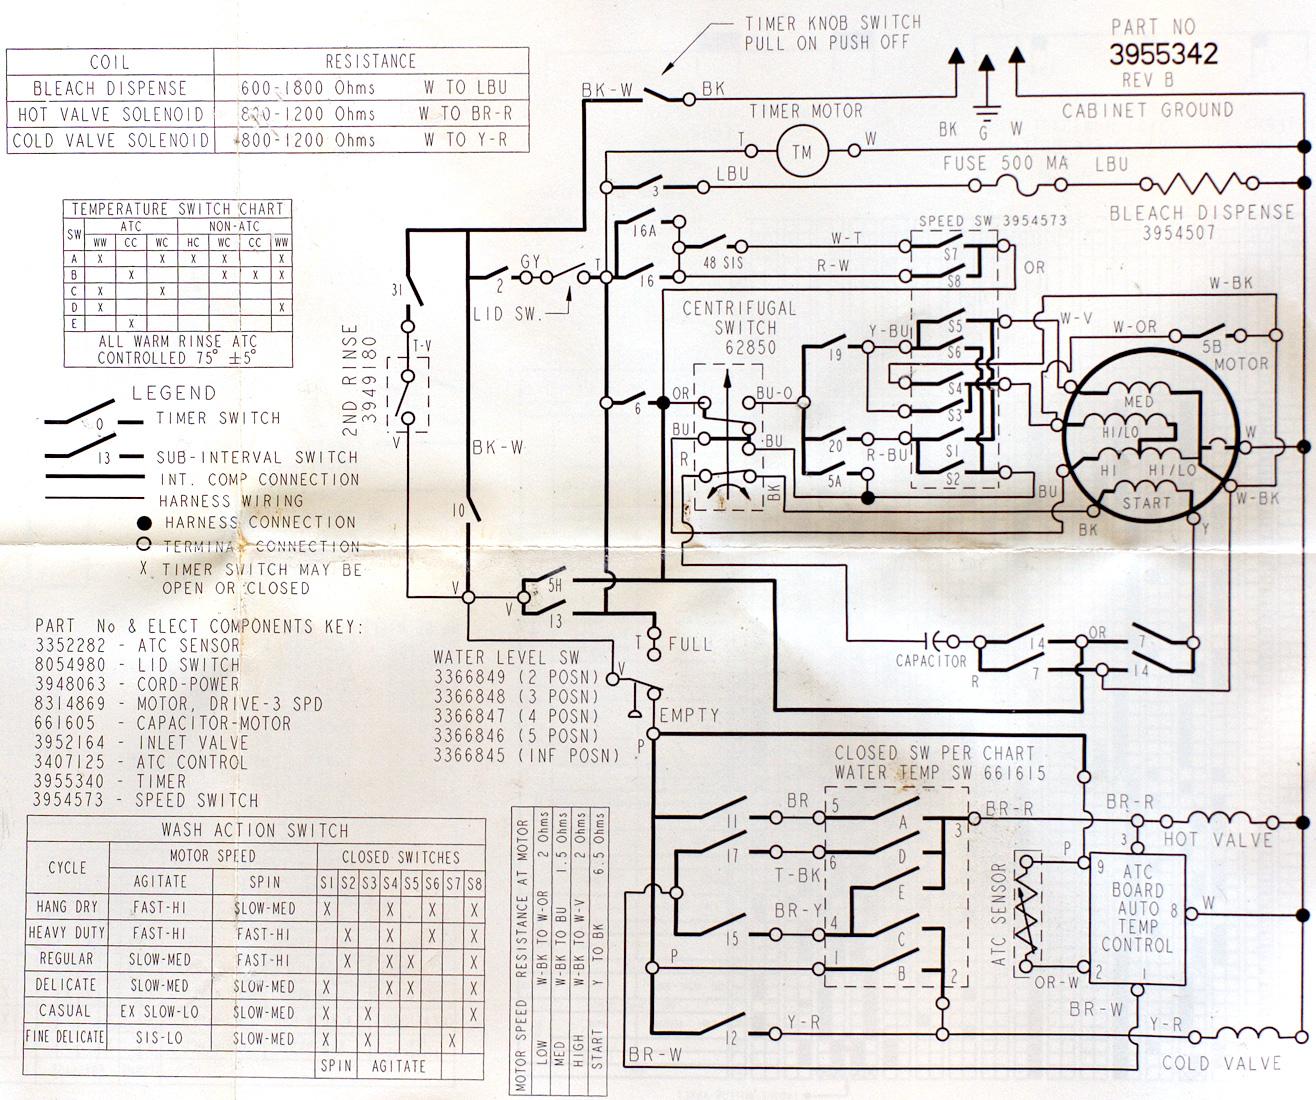 fireworks manufacturing using washing machine motor electronics true manufacturing wiring diagrams at creativeand.co